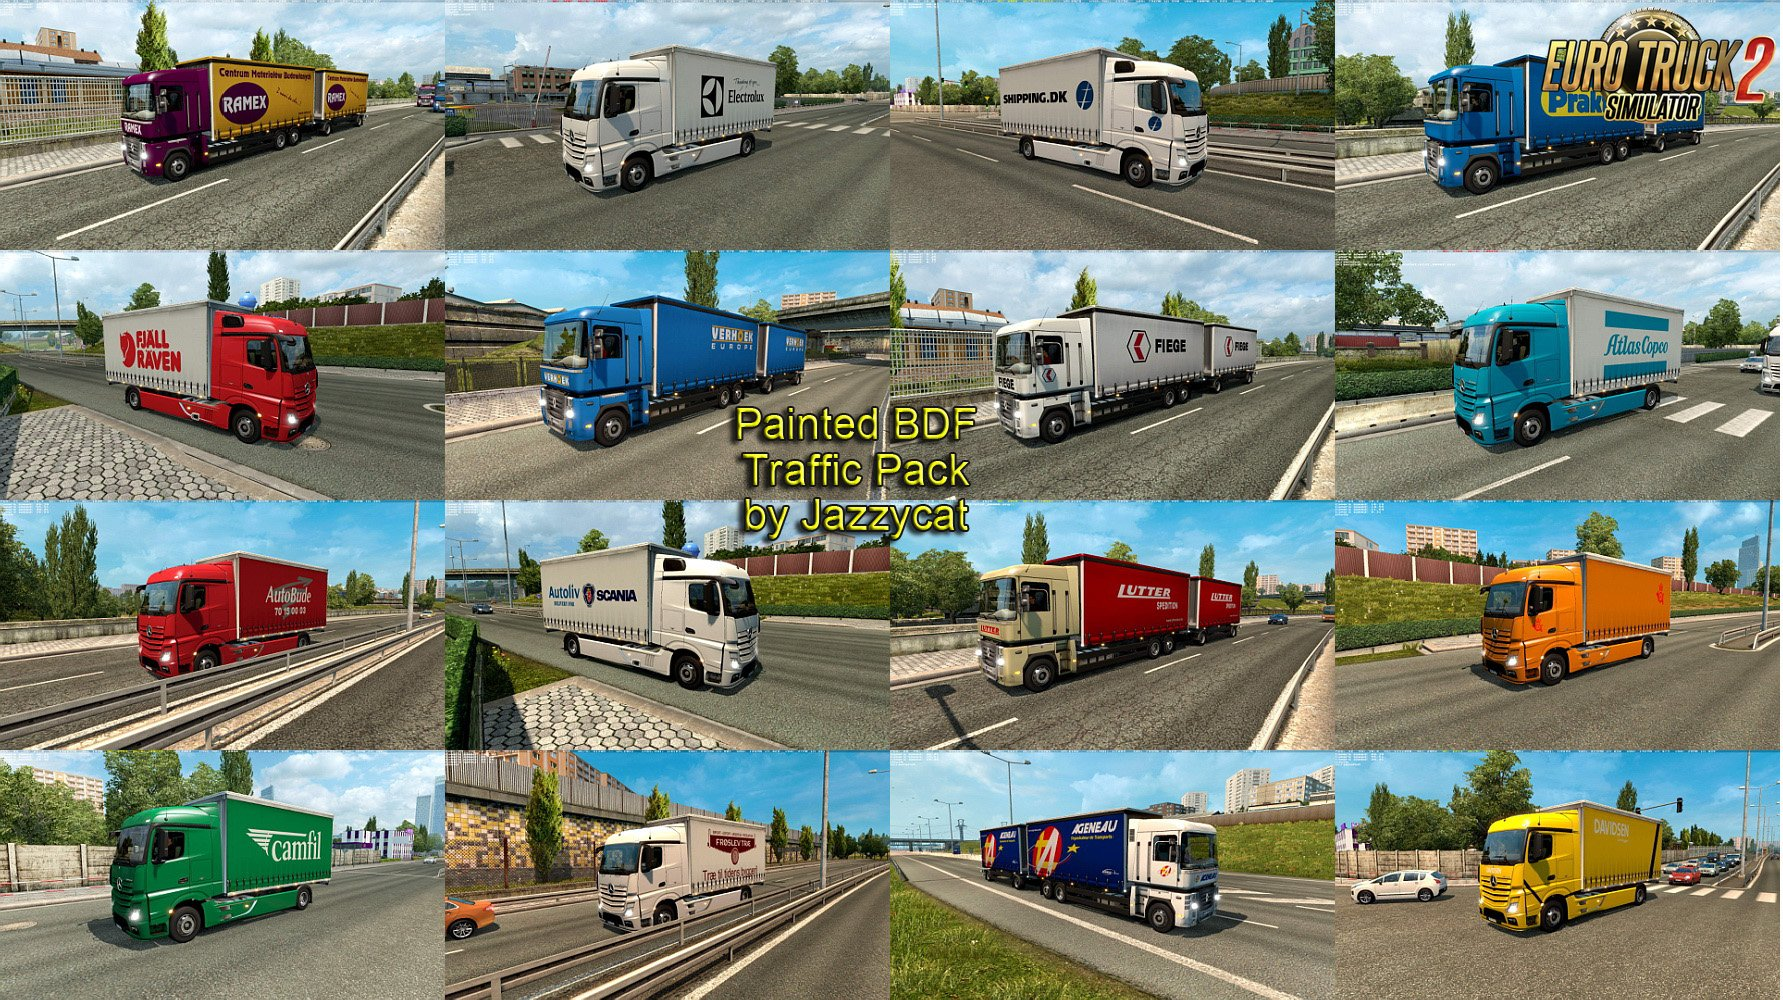 Painted BDF Traffic Pack v1.5 by Jazzycat [1.26.x]